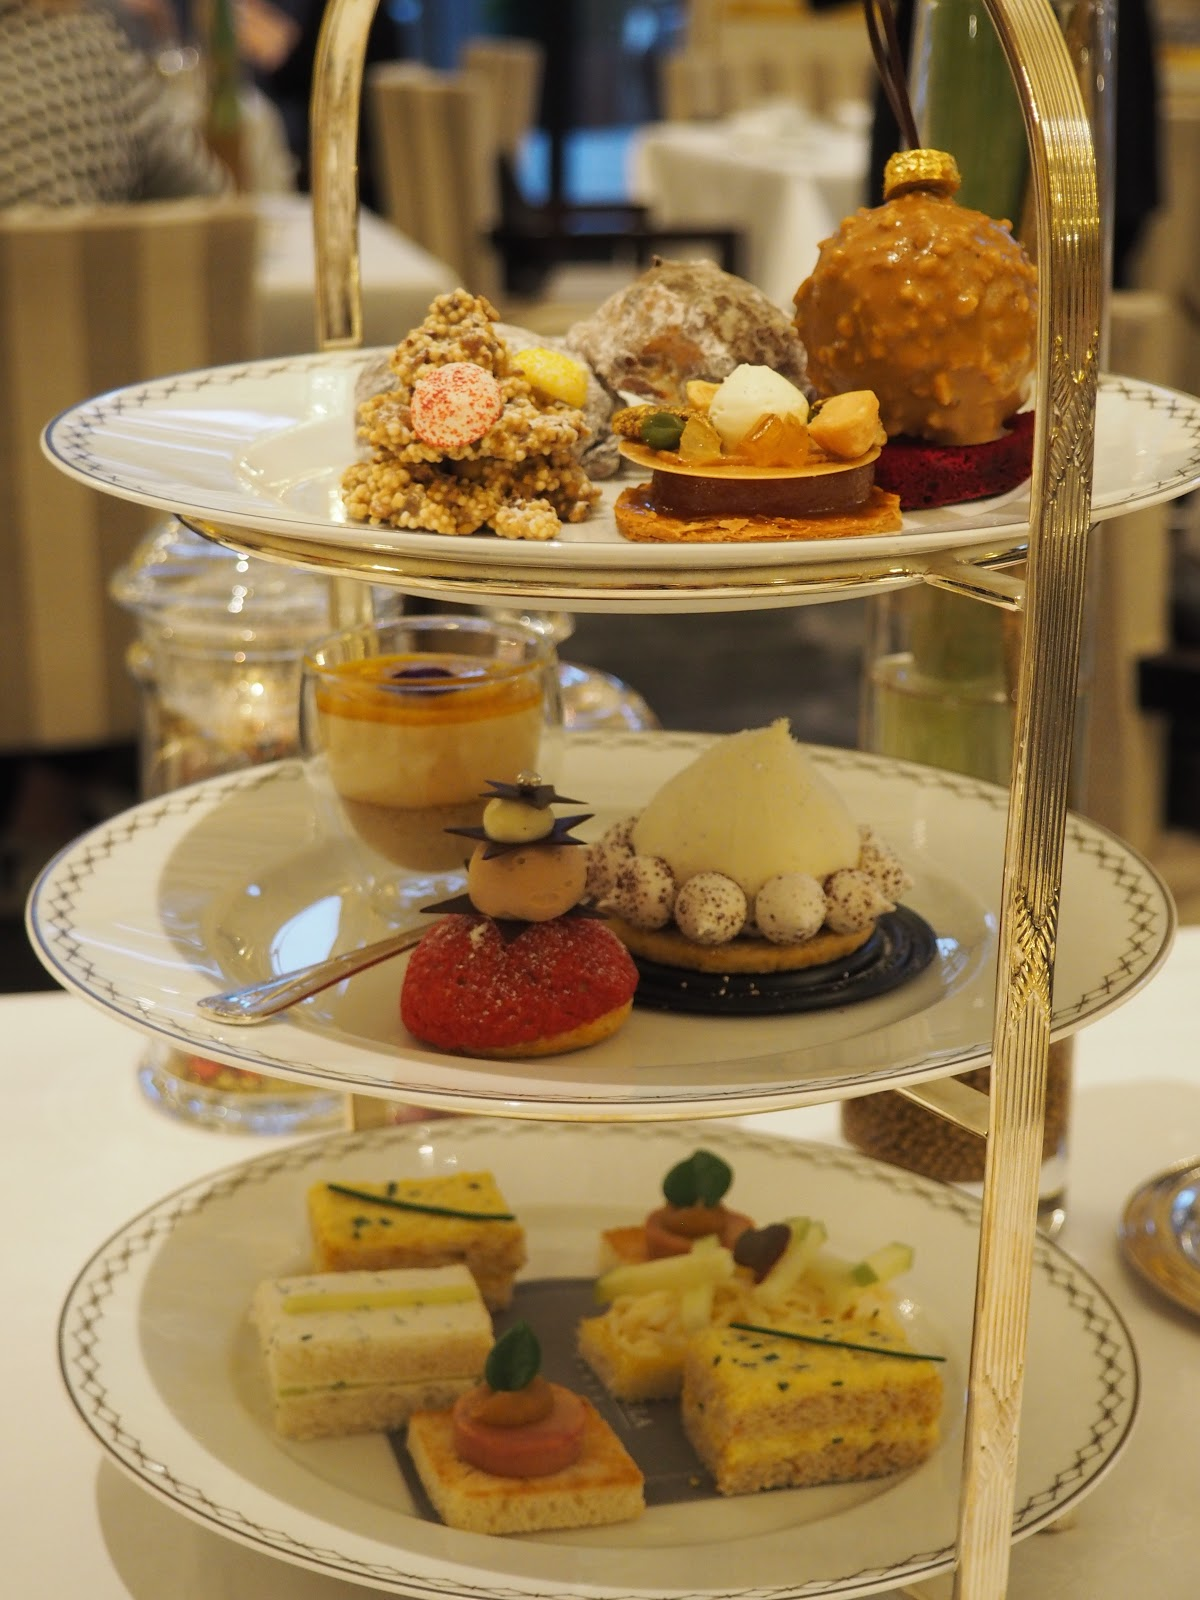 Peninsula Hotel, Paris, Afternoon Tea, cakes and sandwiches